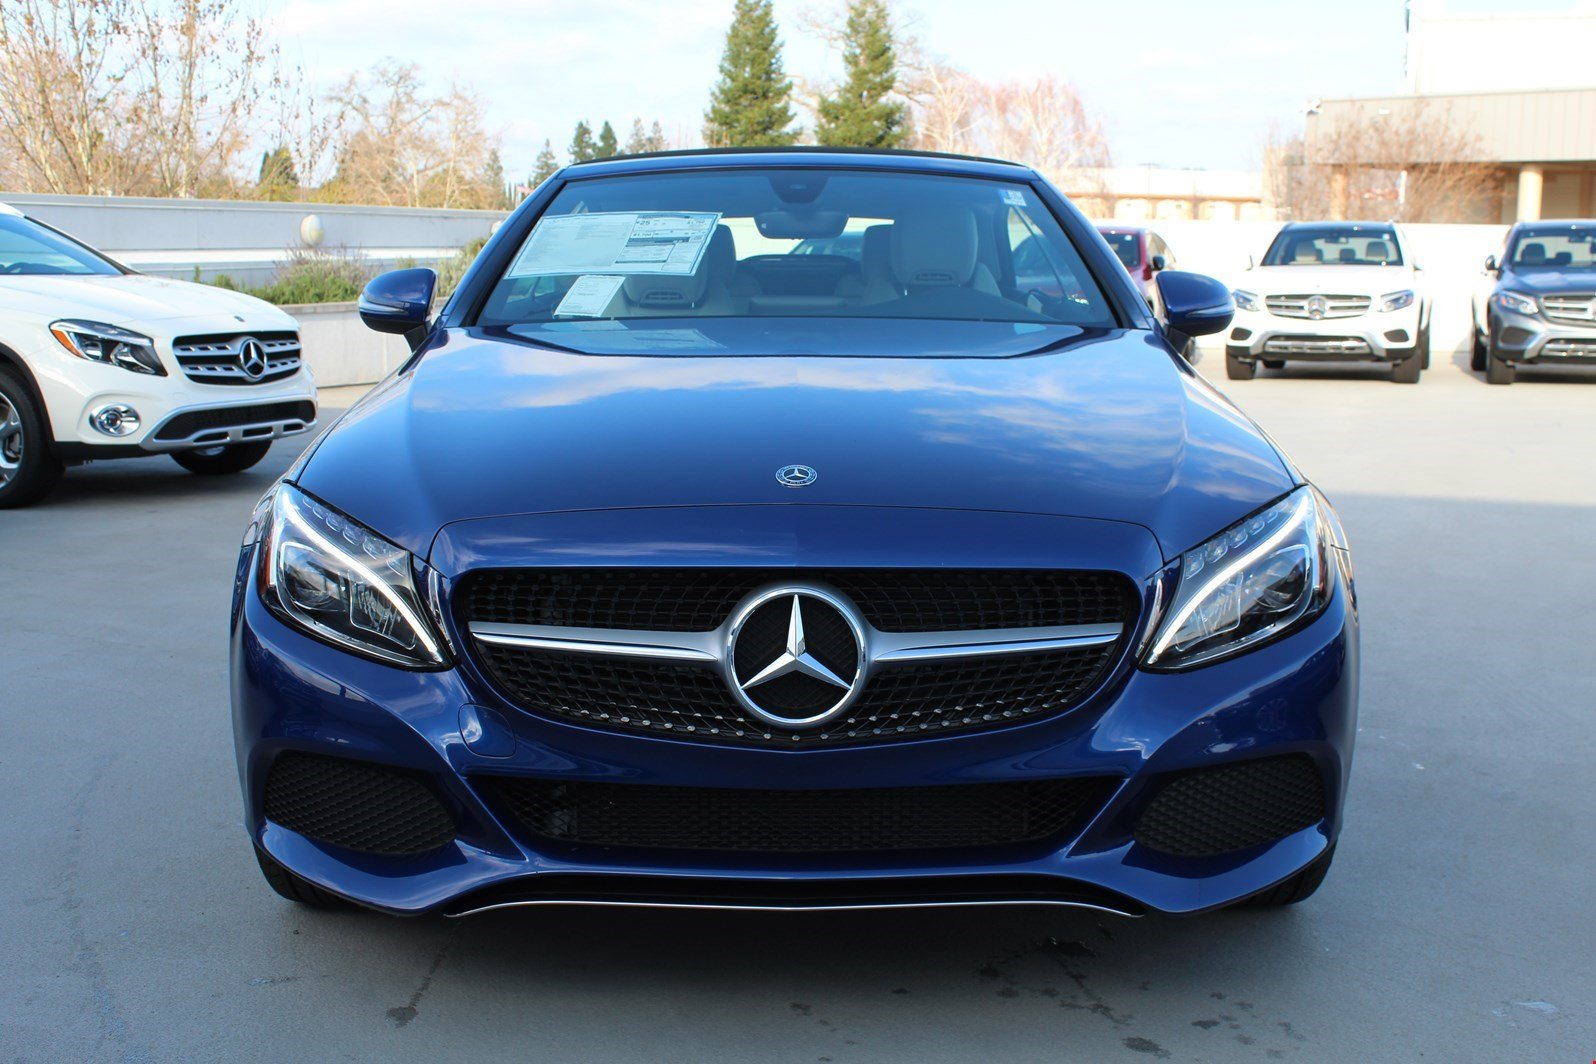 New 2018 Mercedes Benz C Class C 300 CABRIOLET in Rocklin N